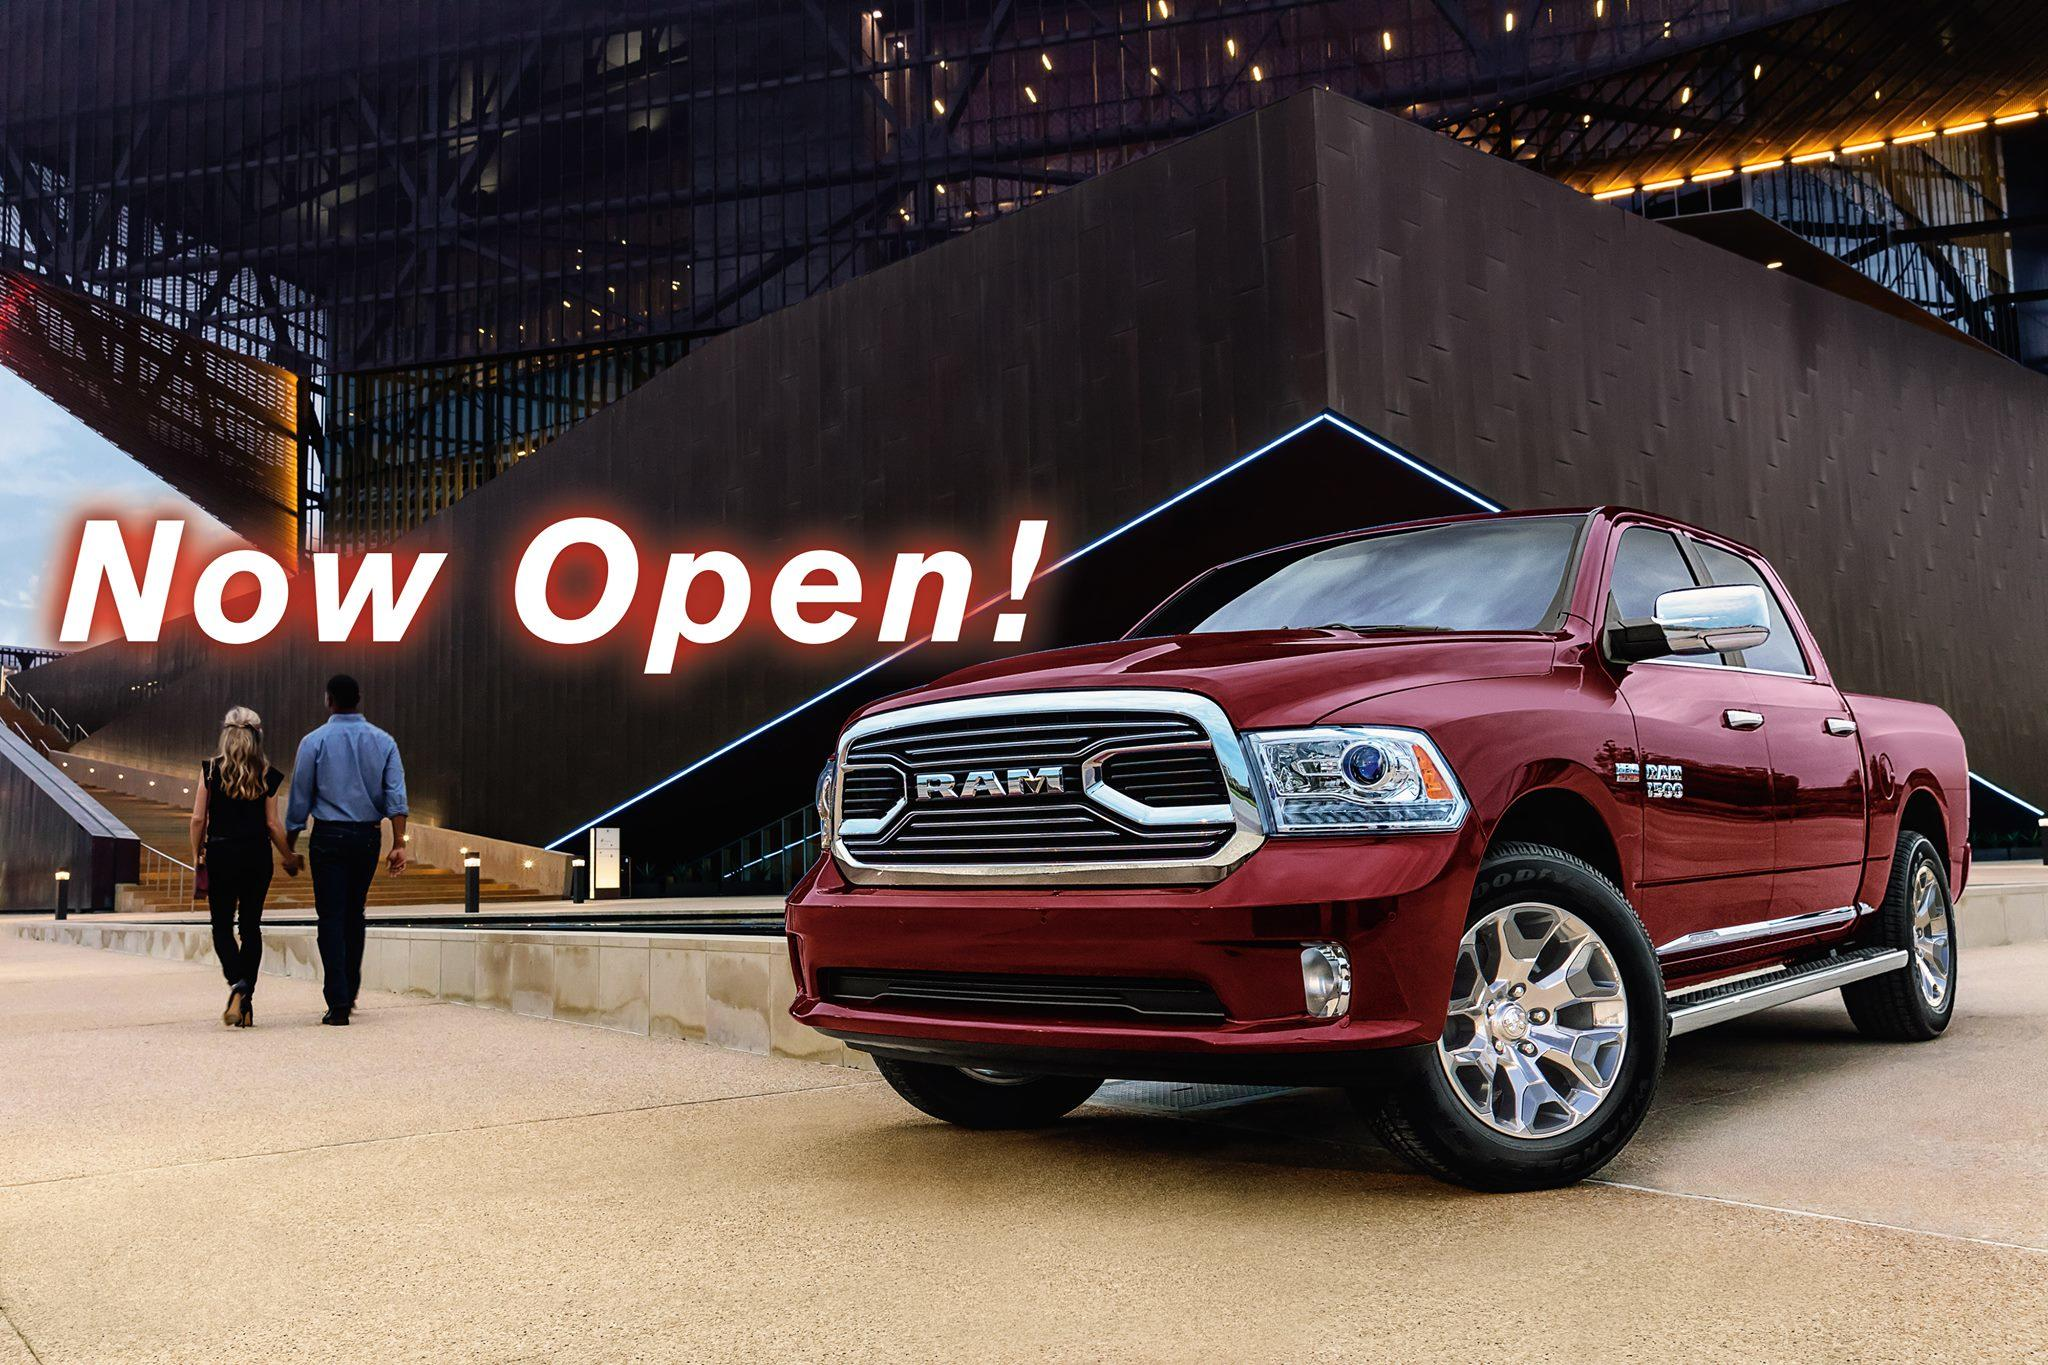 Criswell Chrysler Dodge Jeep RAM of Thurmont image 0